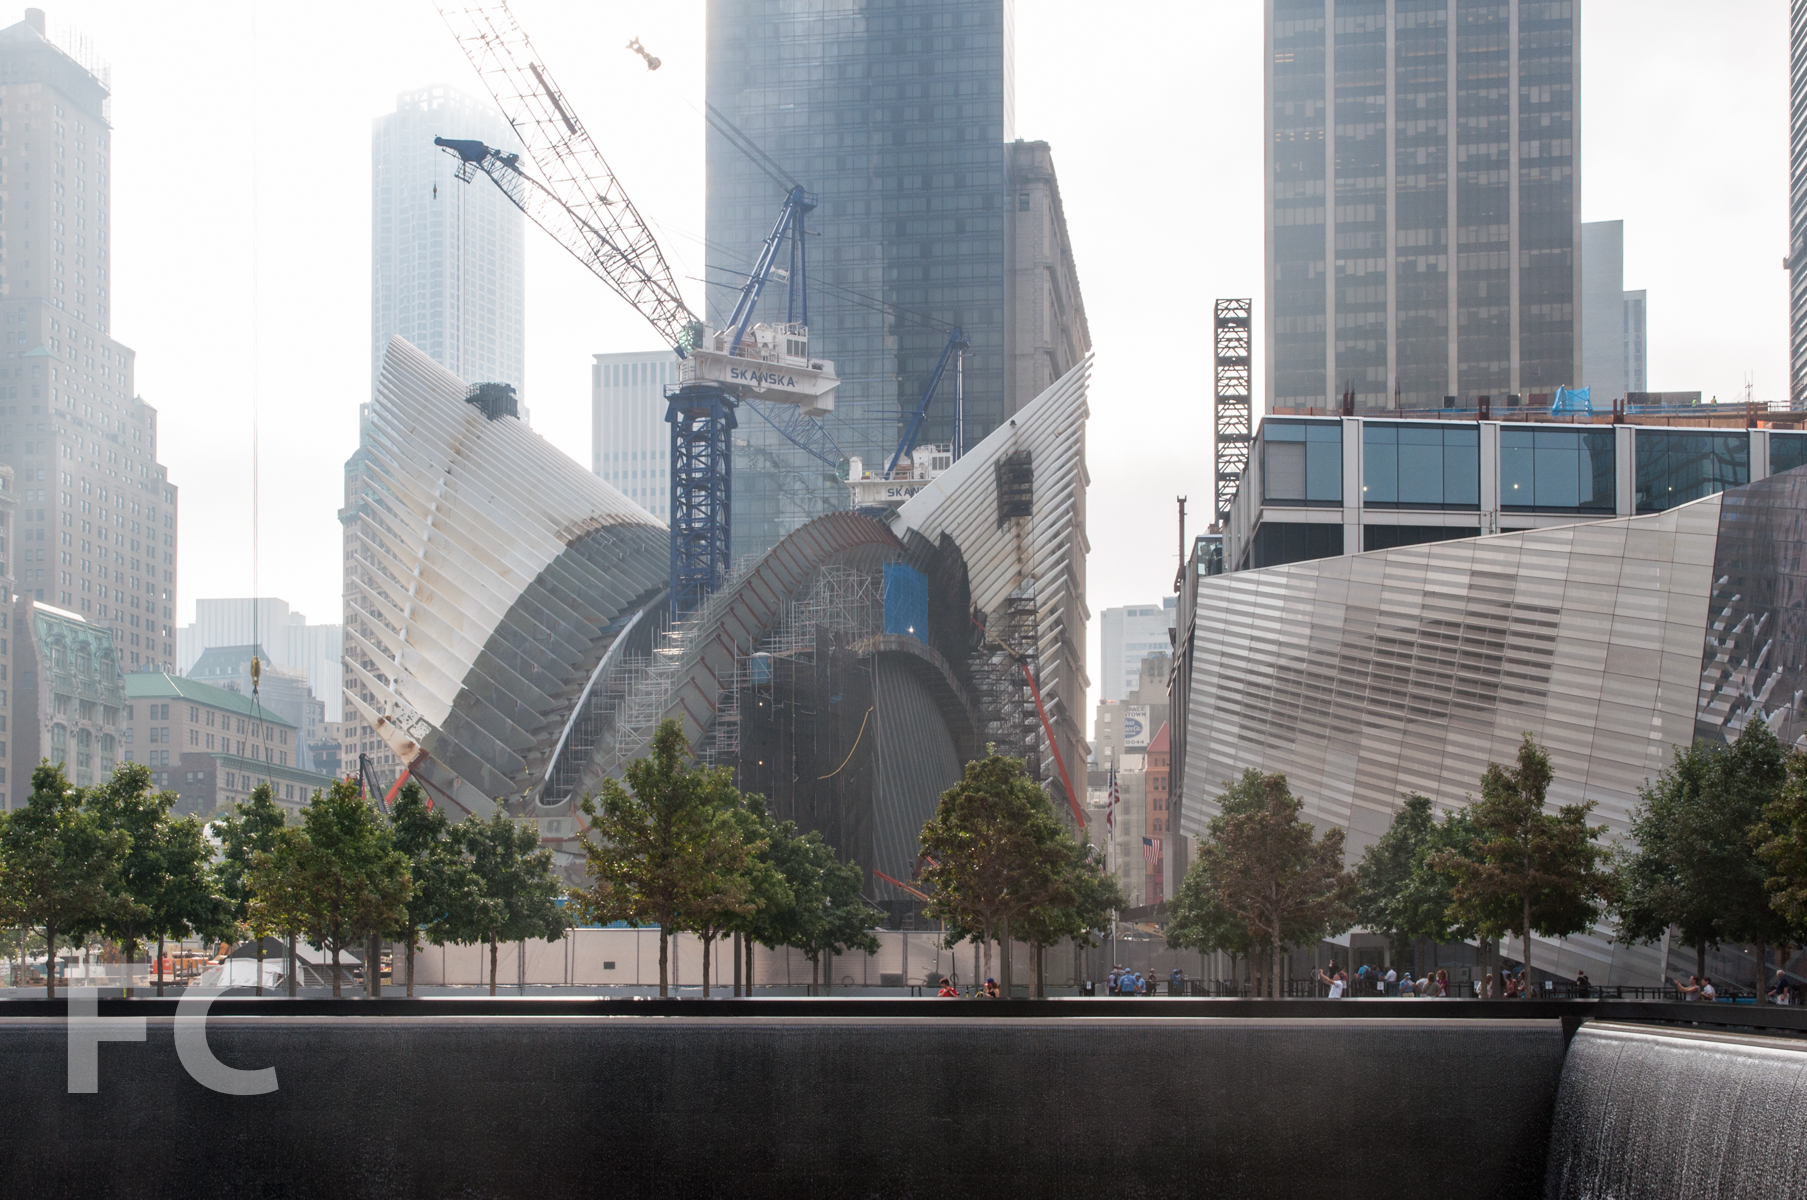 The WTC Transit Hub (center) and WTC Museum (right) seen from the Memorial pools.